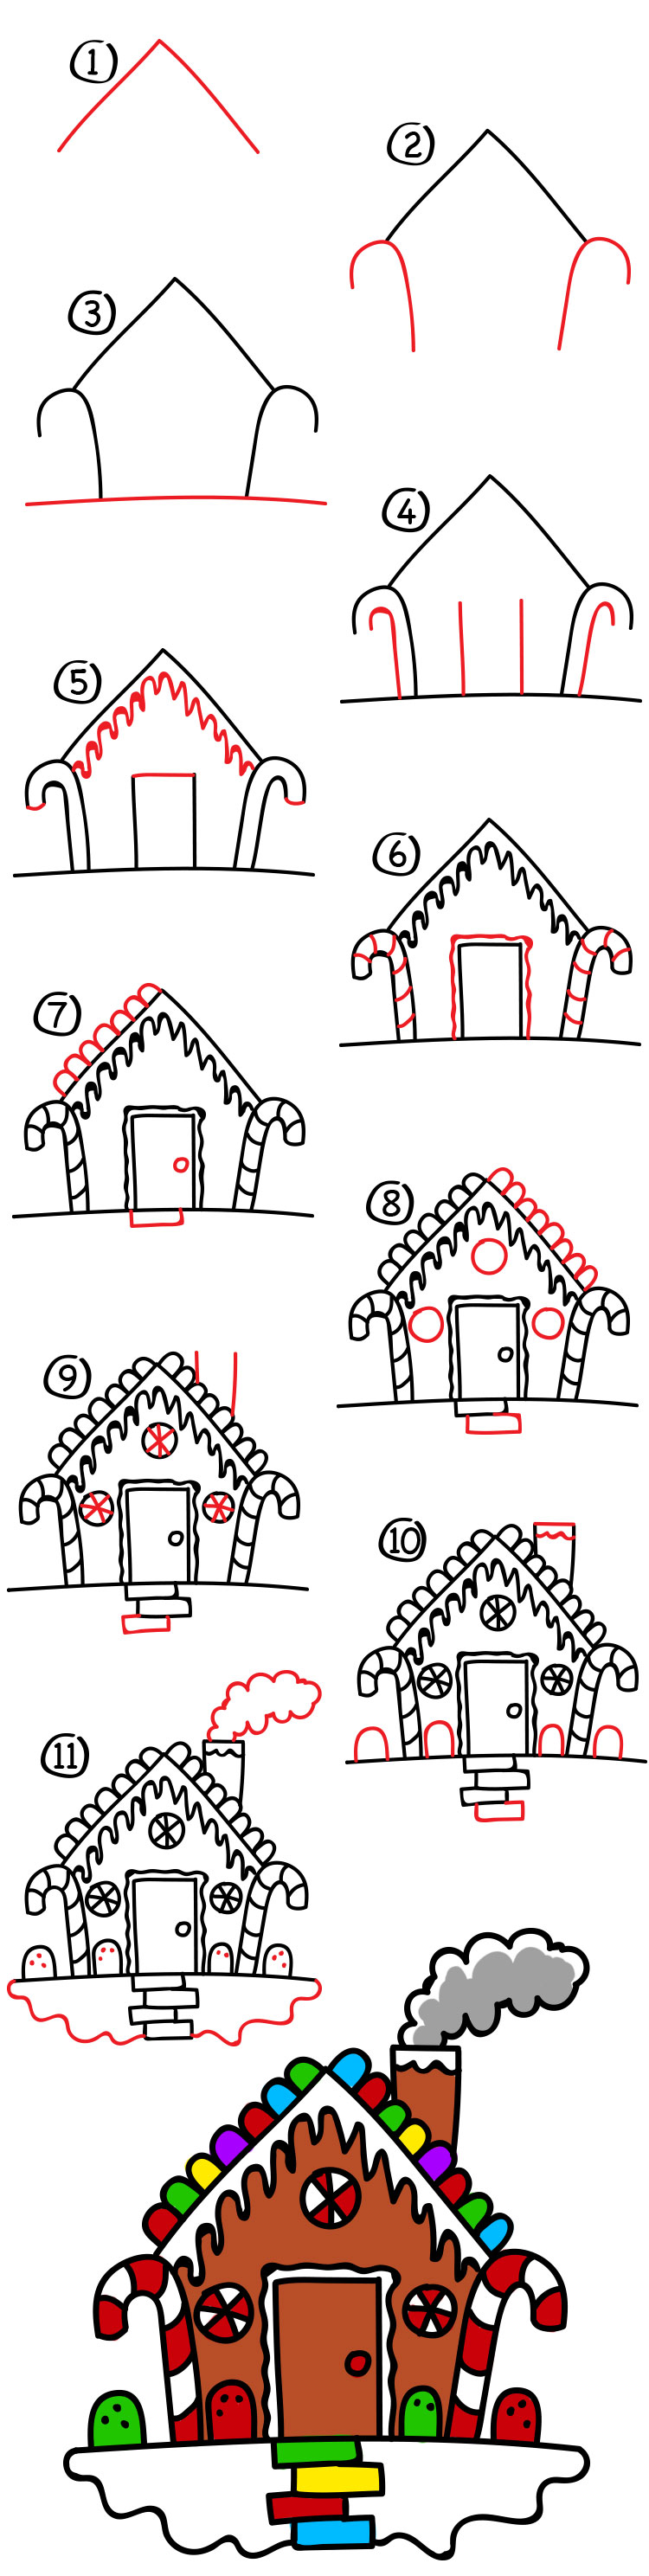 750x2977 How To Draw A Gingerbread House